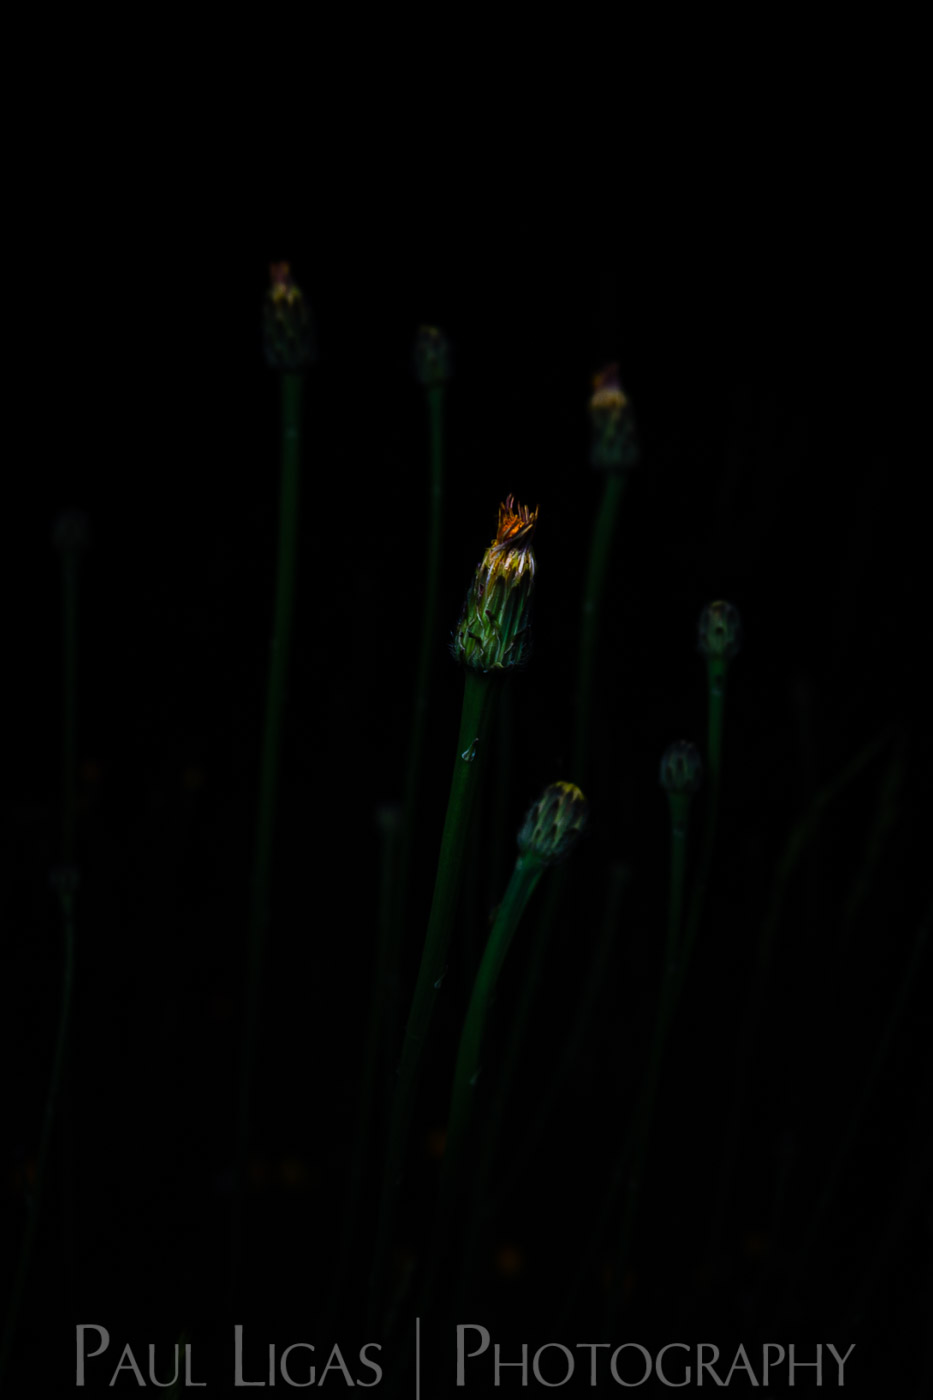 Portraits of Wildflowers at Night - Paul Ligas Photography Herefordshire - Hawkbit-6429